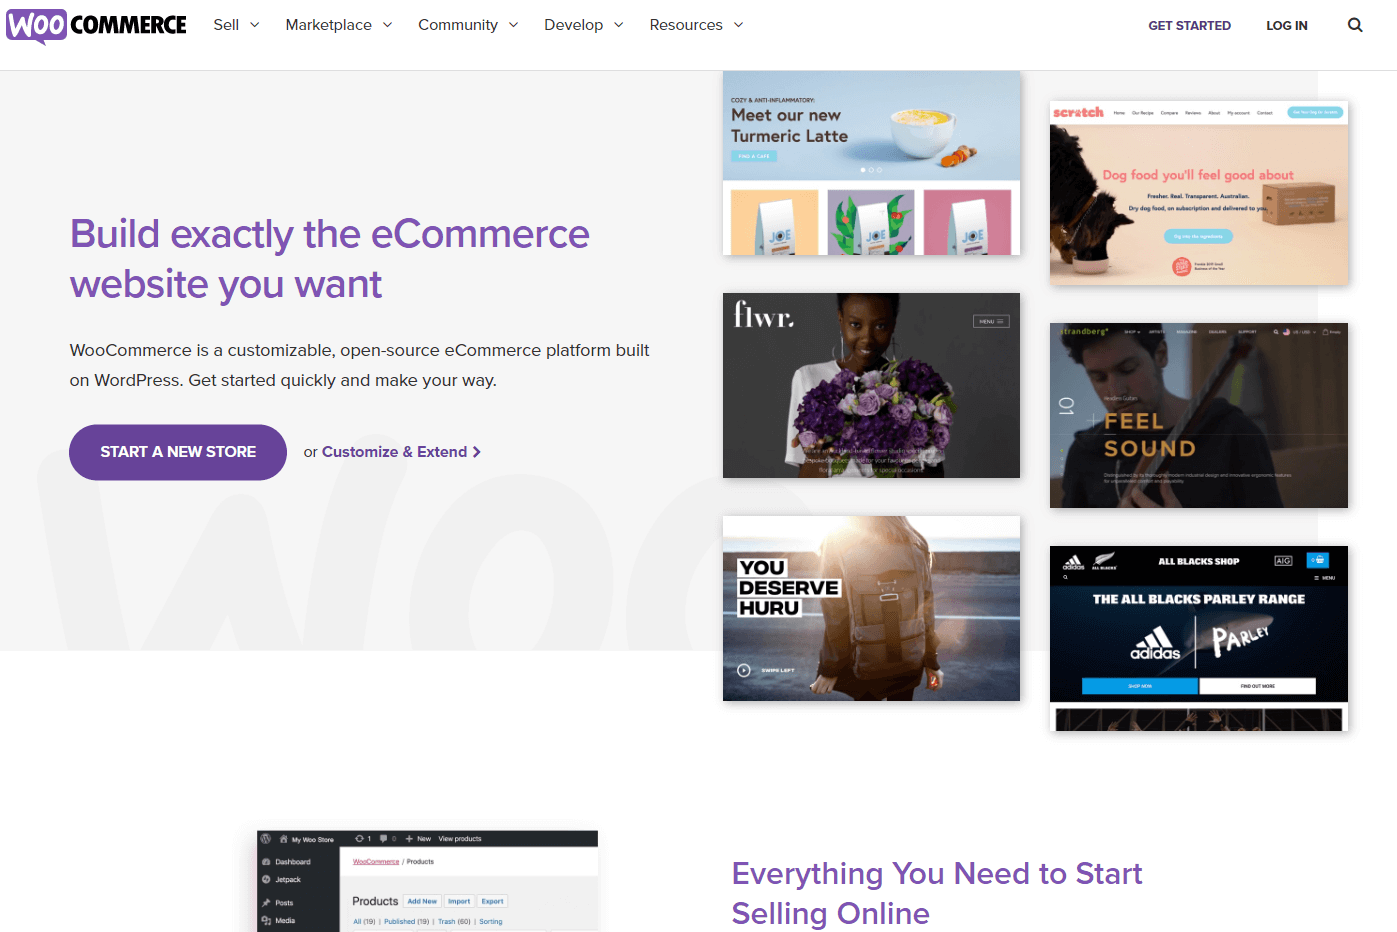 The WooCommerce plugin home page.